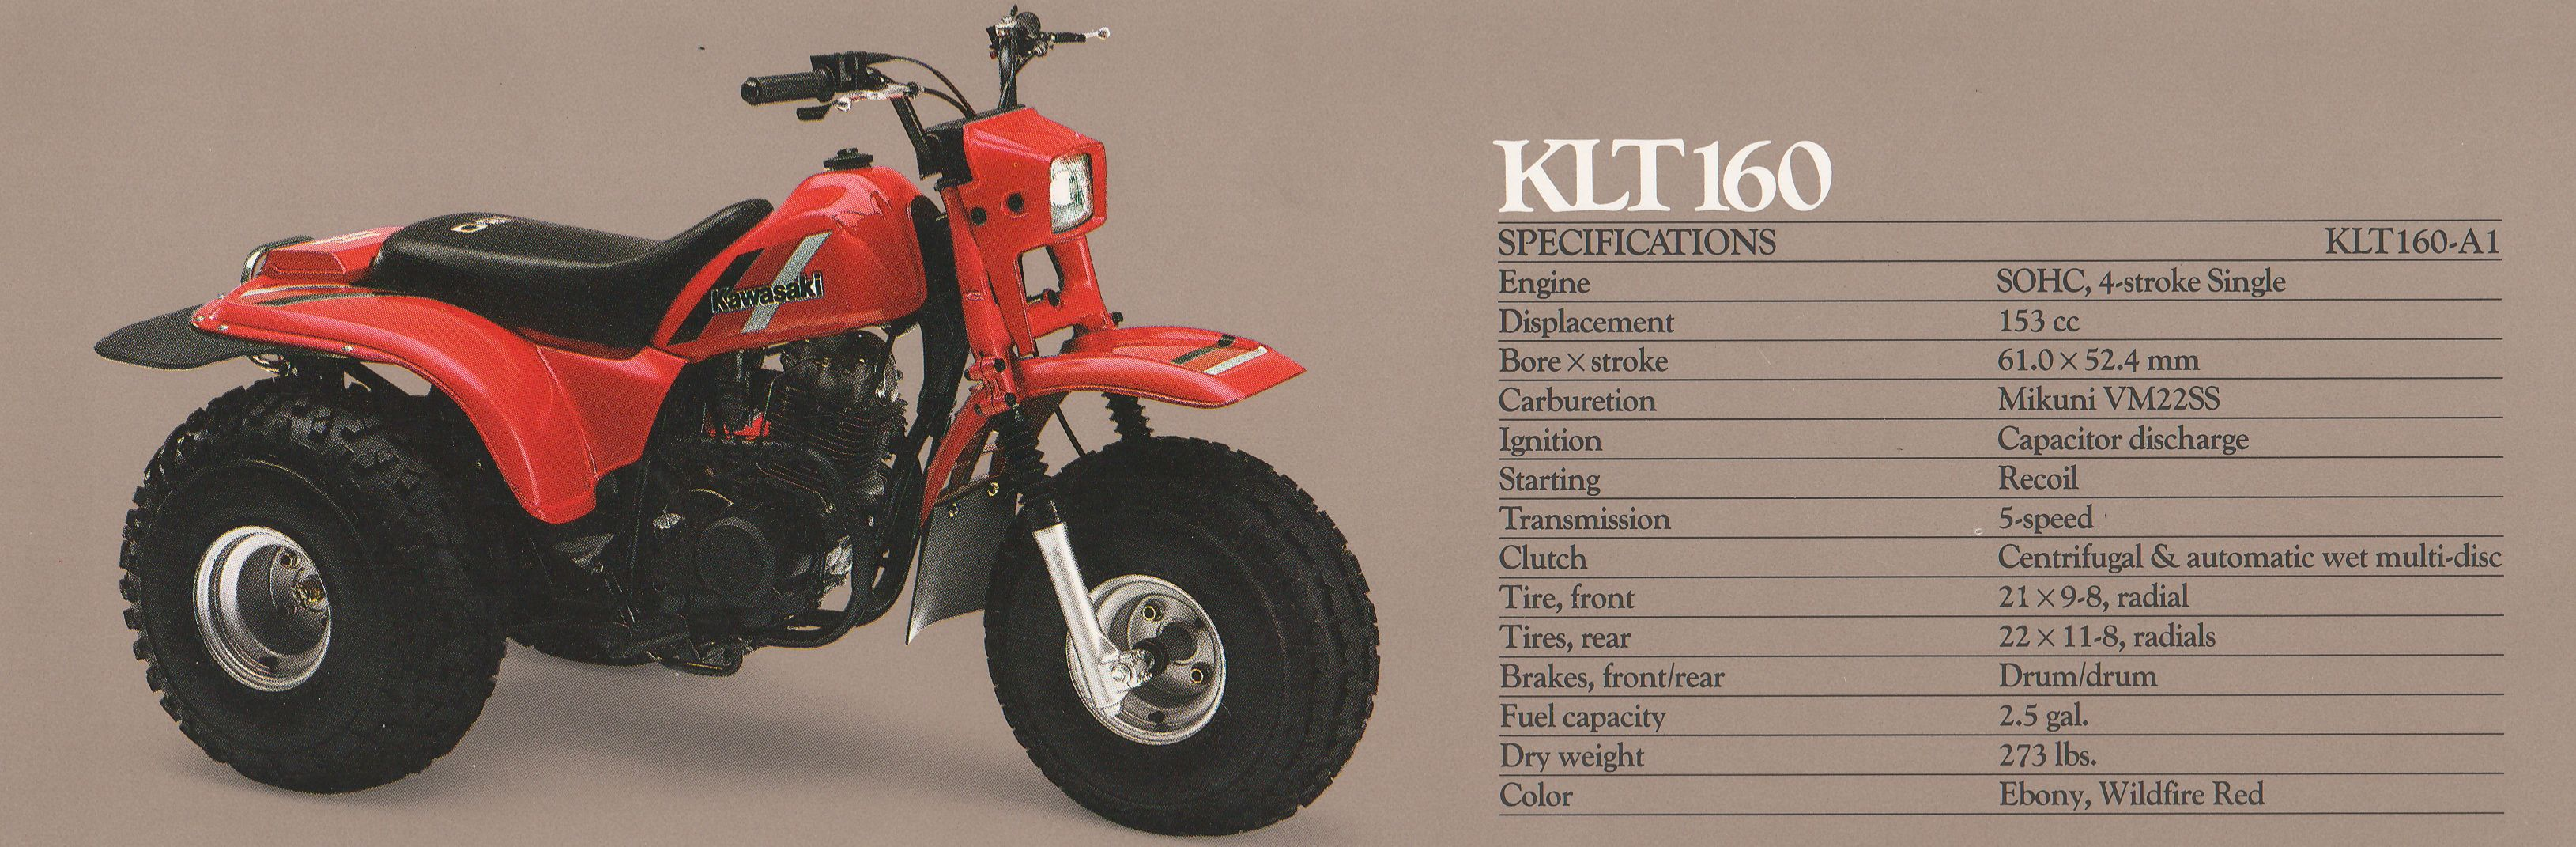 Kawasaki #KLT160 Three Wheeler